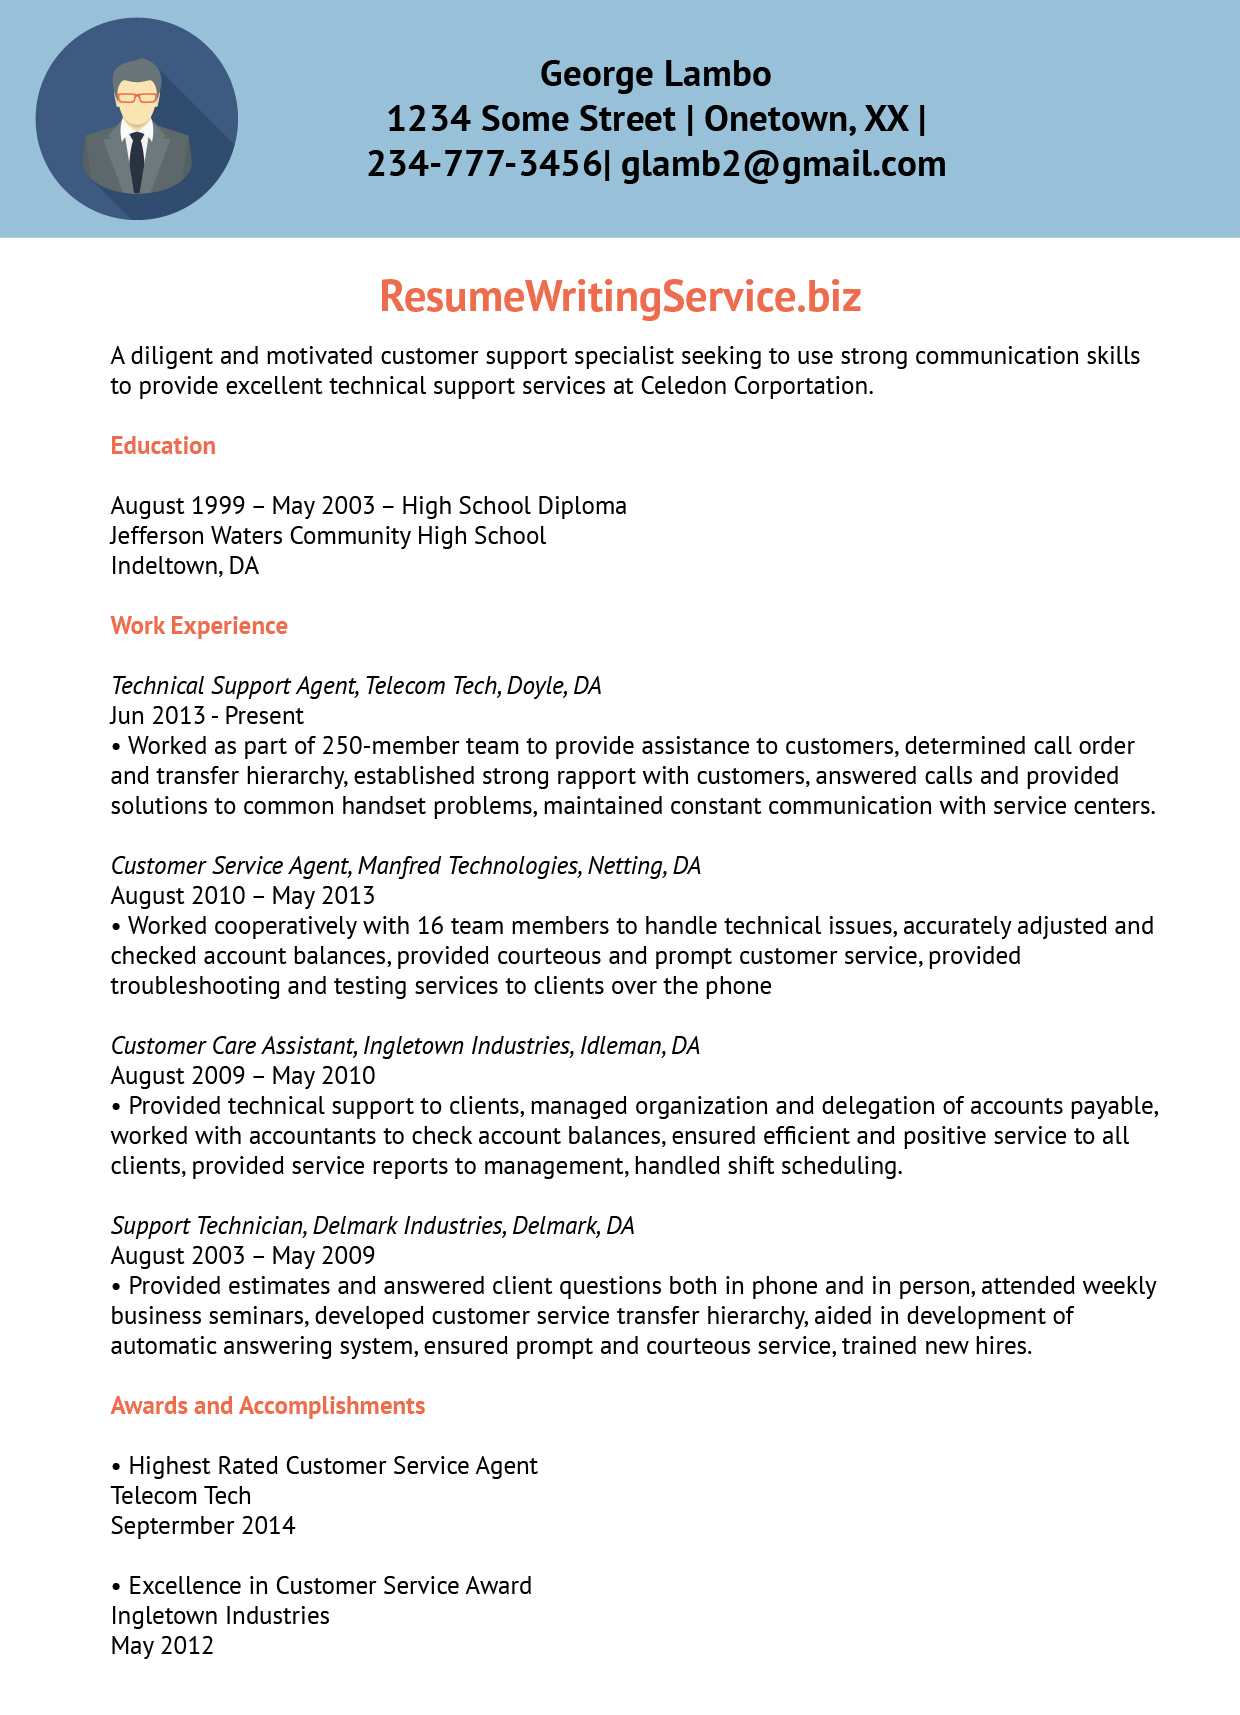 Technical writing services with examples business